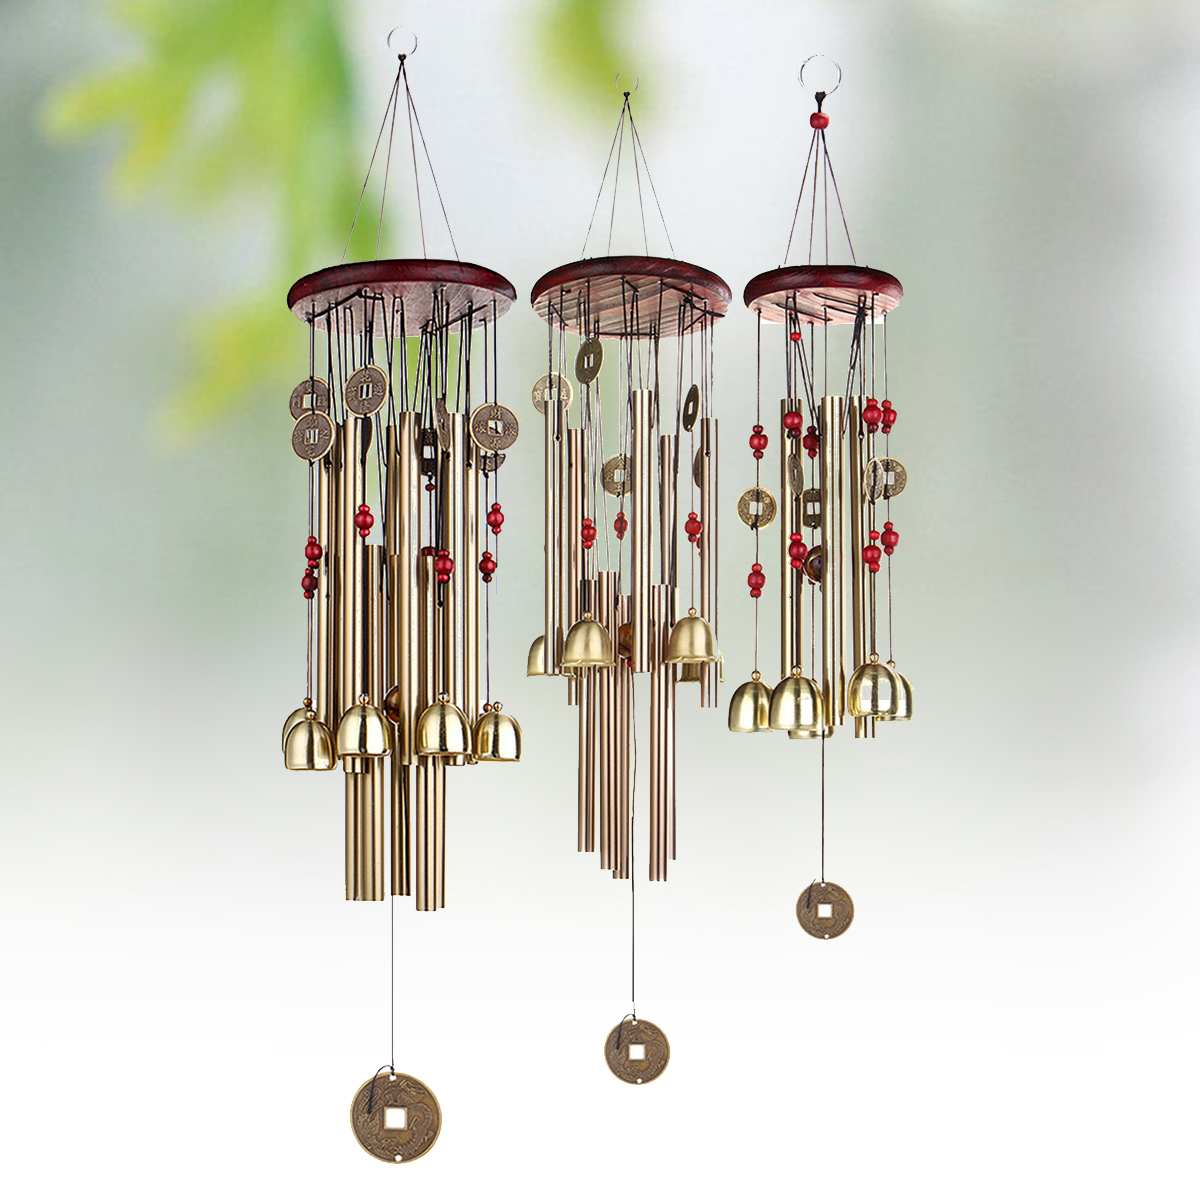 Wind Chime Bell Blessing Feng Shui Wind Chime for Good Luck Fortune Home Decor Garden Miniature Hanging Decoration Accessories| | - AliExpress